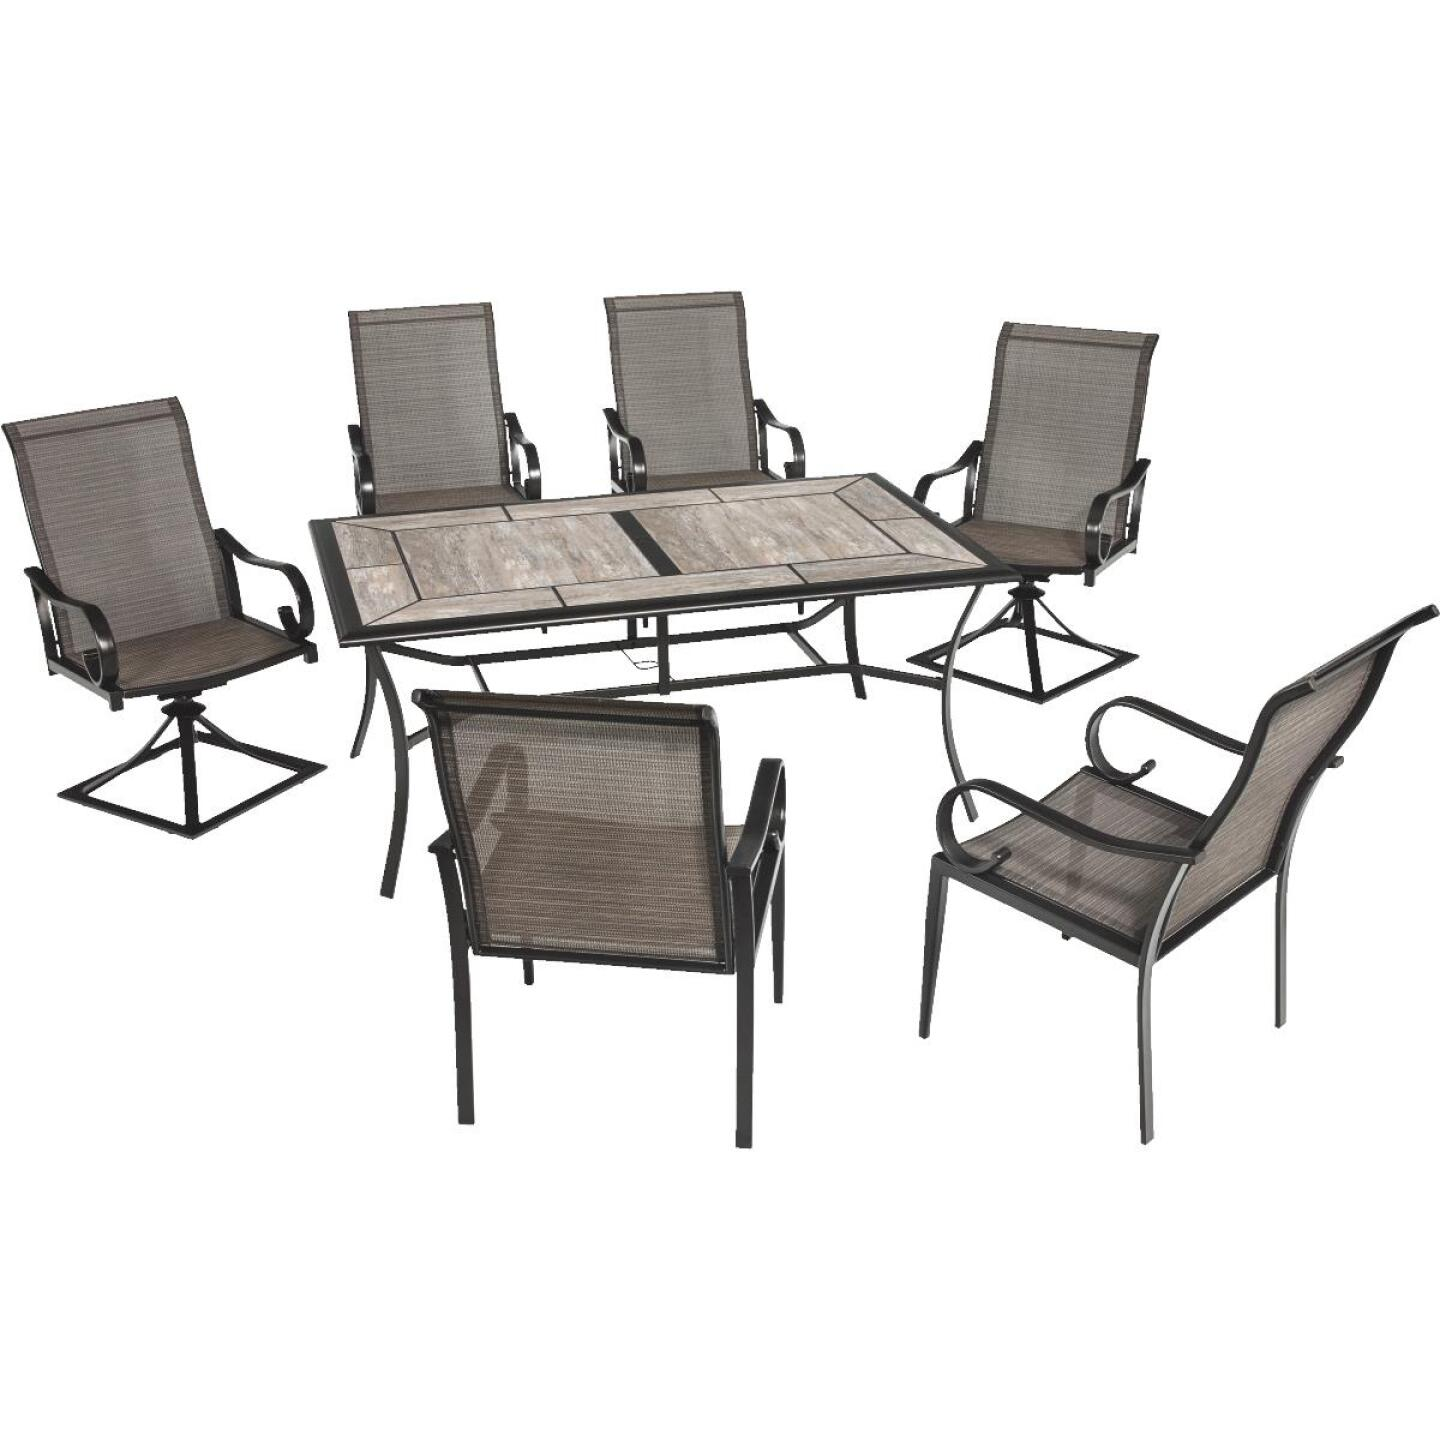 Outdoor Expressions Berkshire 7-Piece Dining Set Image 271